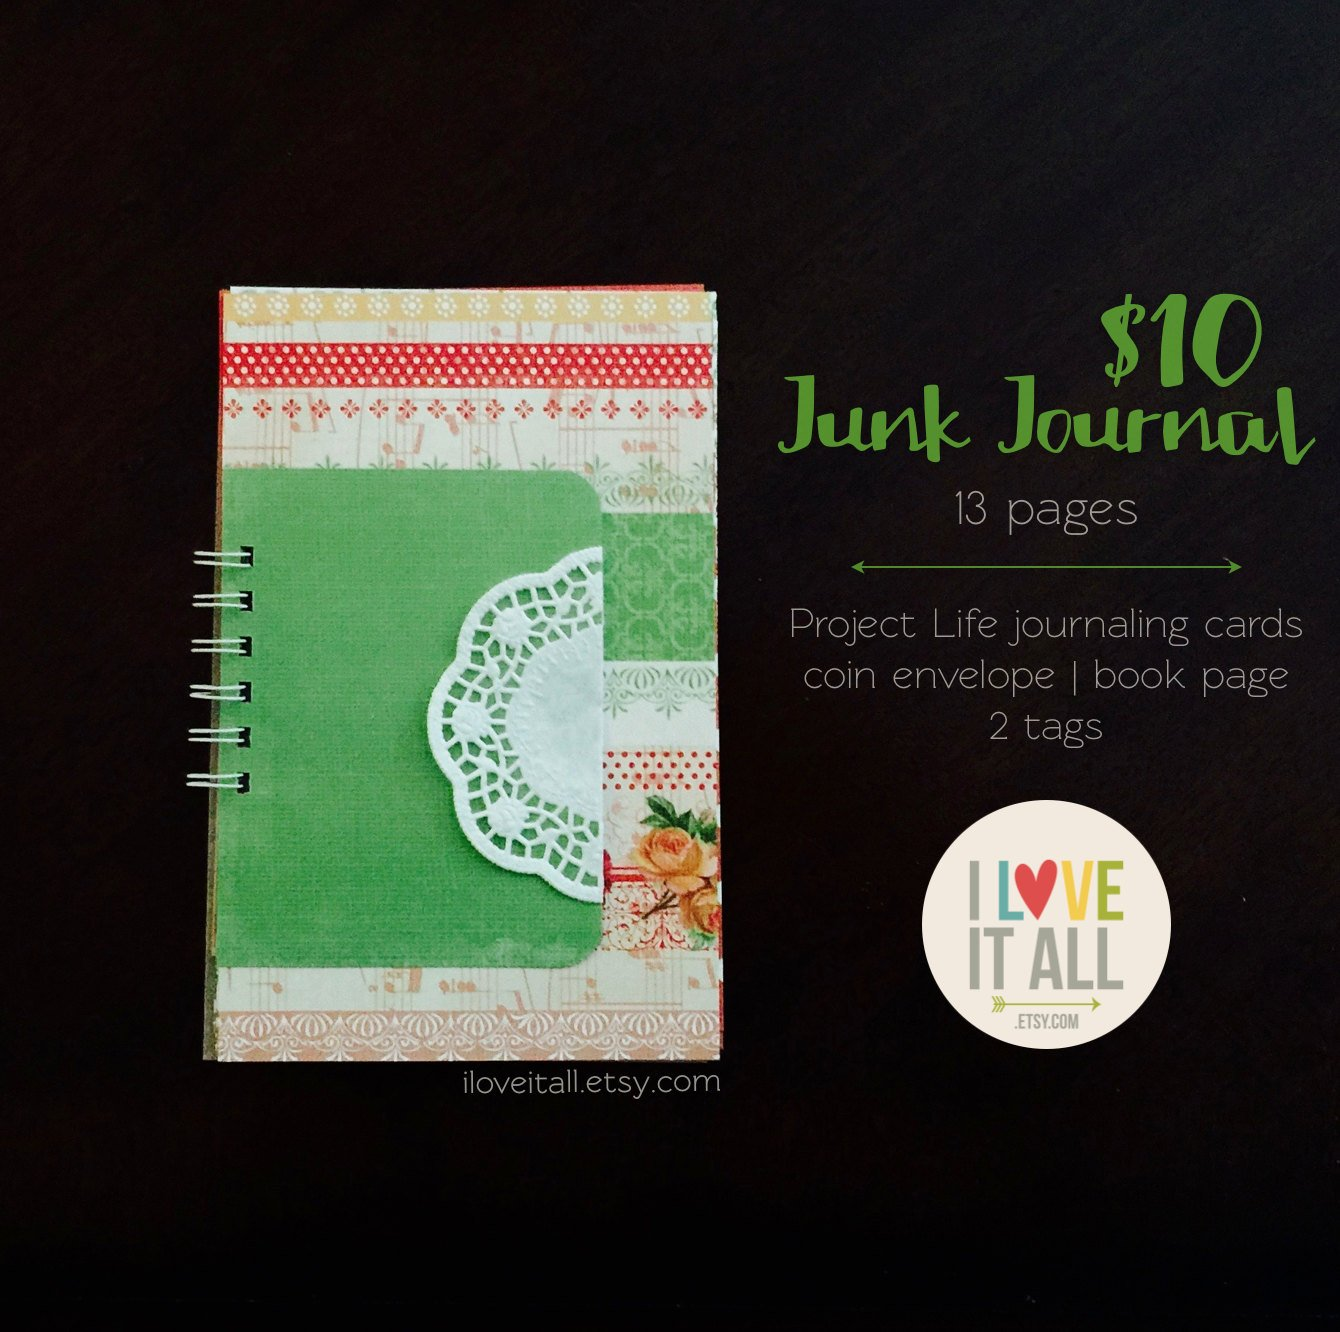 #30lists #journals #mini books #smashbook #mini album #notebooks #mixed media journals #instagram journal #gratitude journal